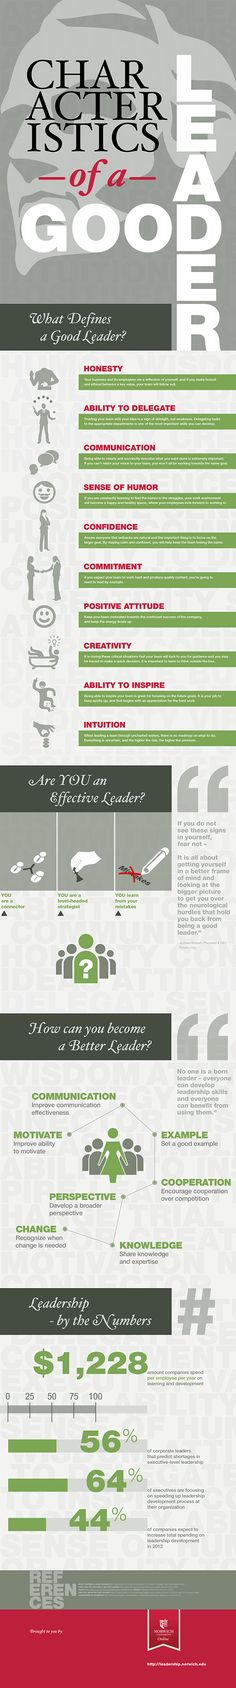 What are the characteristics of a good leader – Infographic | Leading Effectively: Official Blog of the Center for Creative Leadership